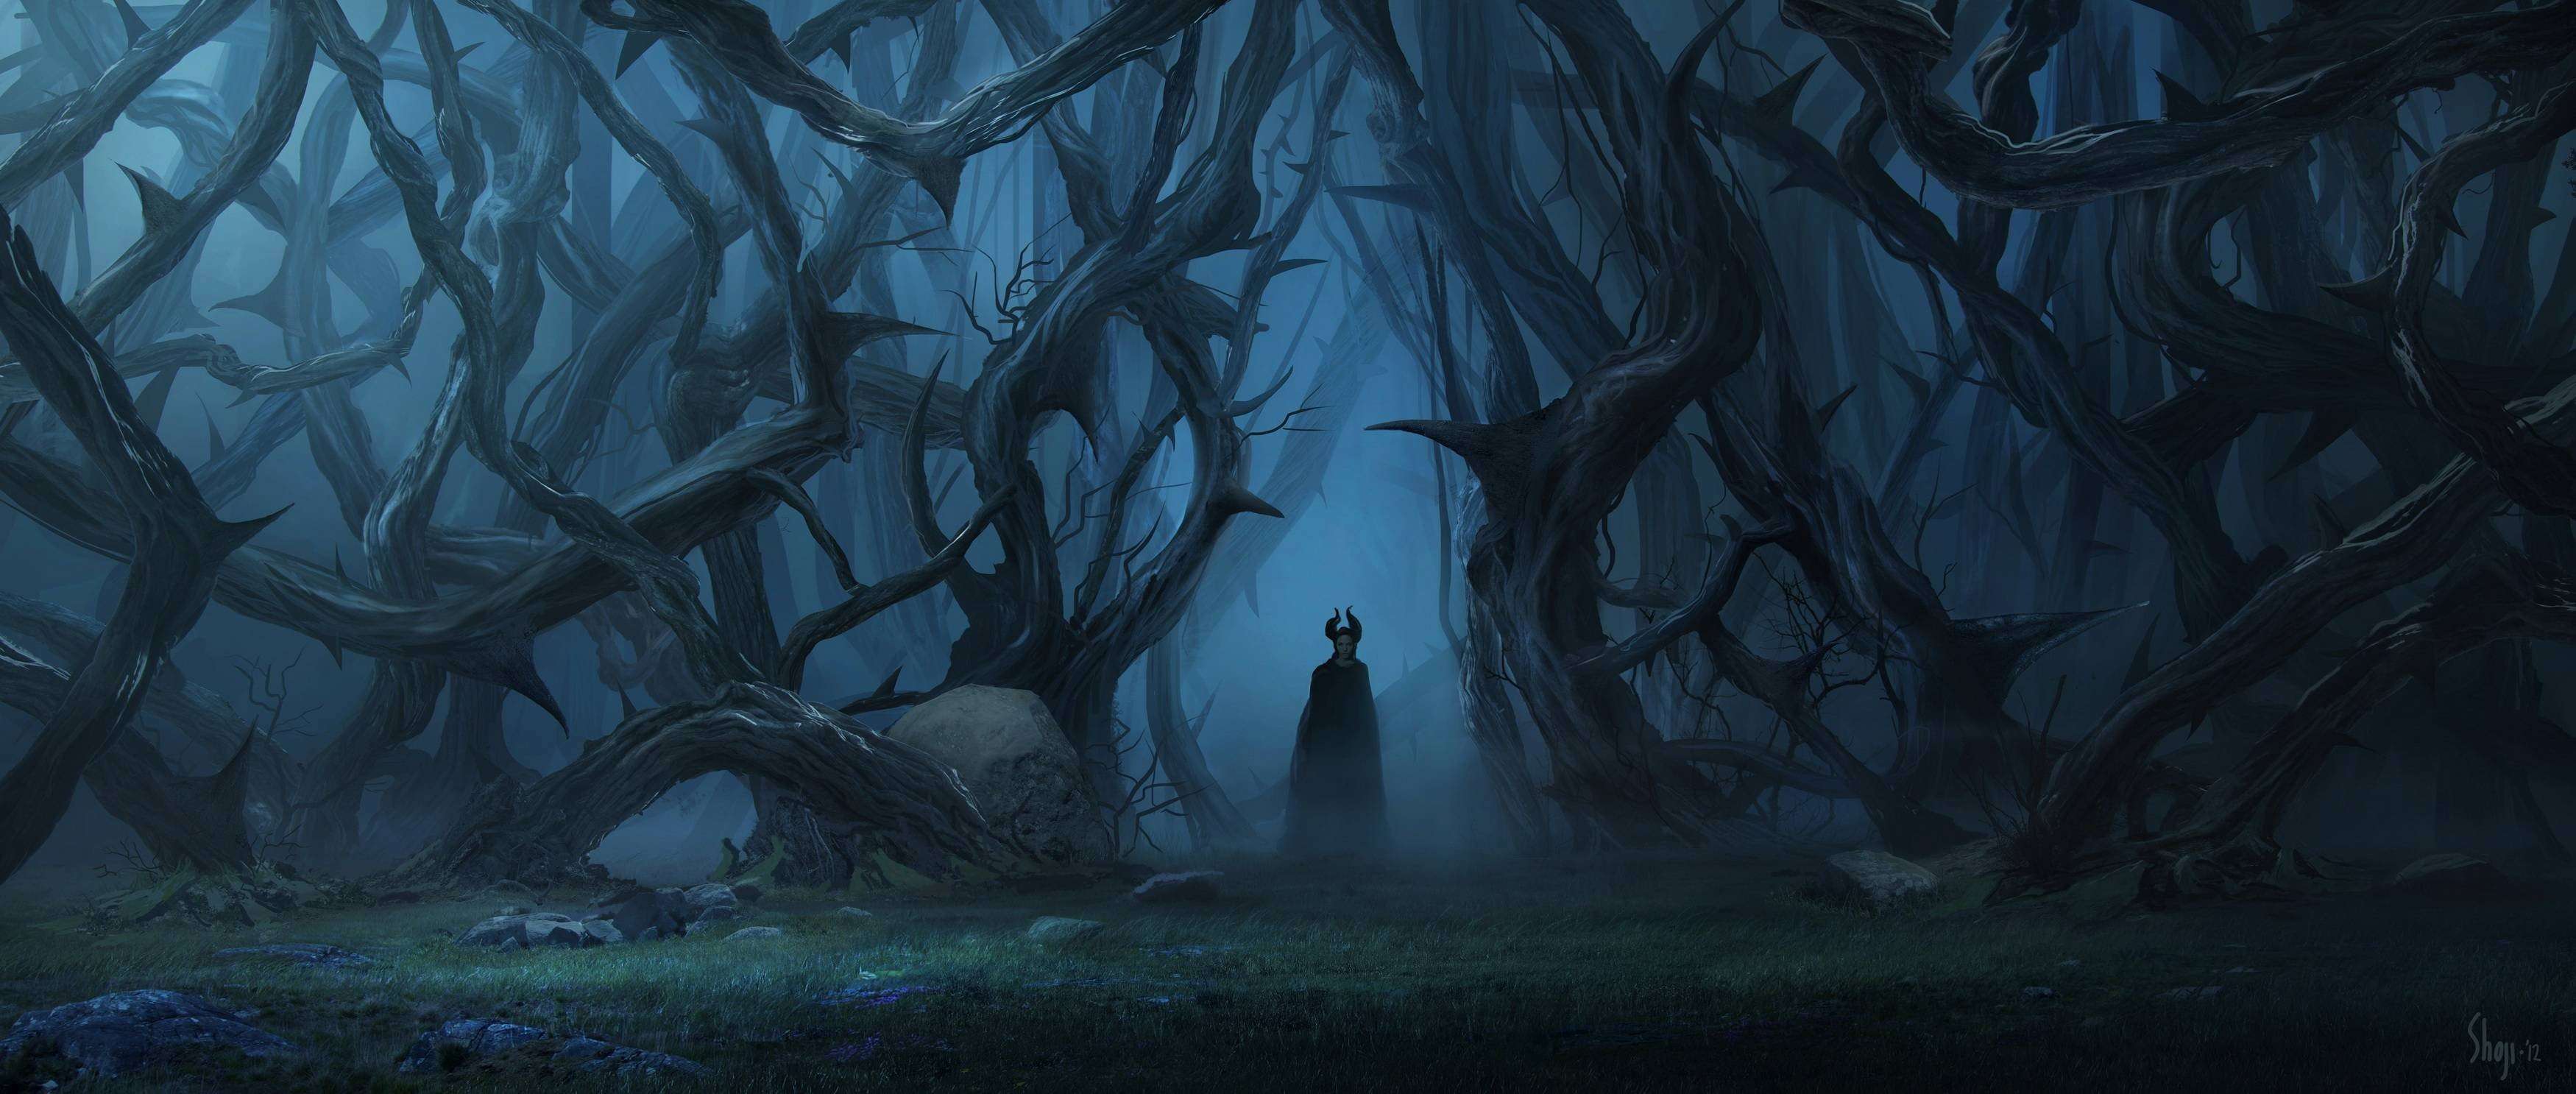 Maleficent Wallpapers ...